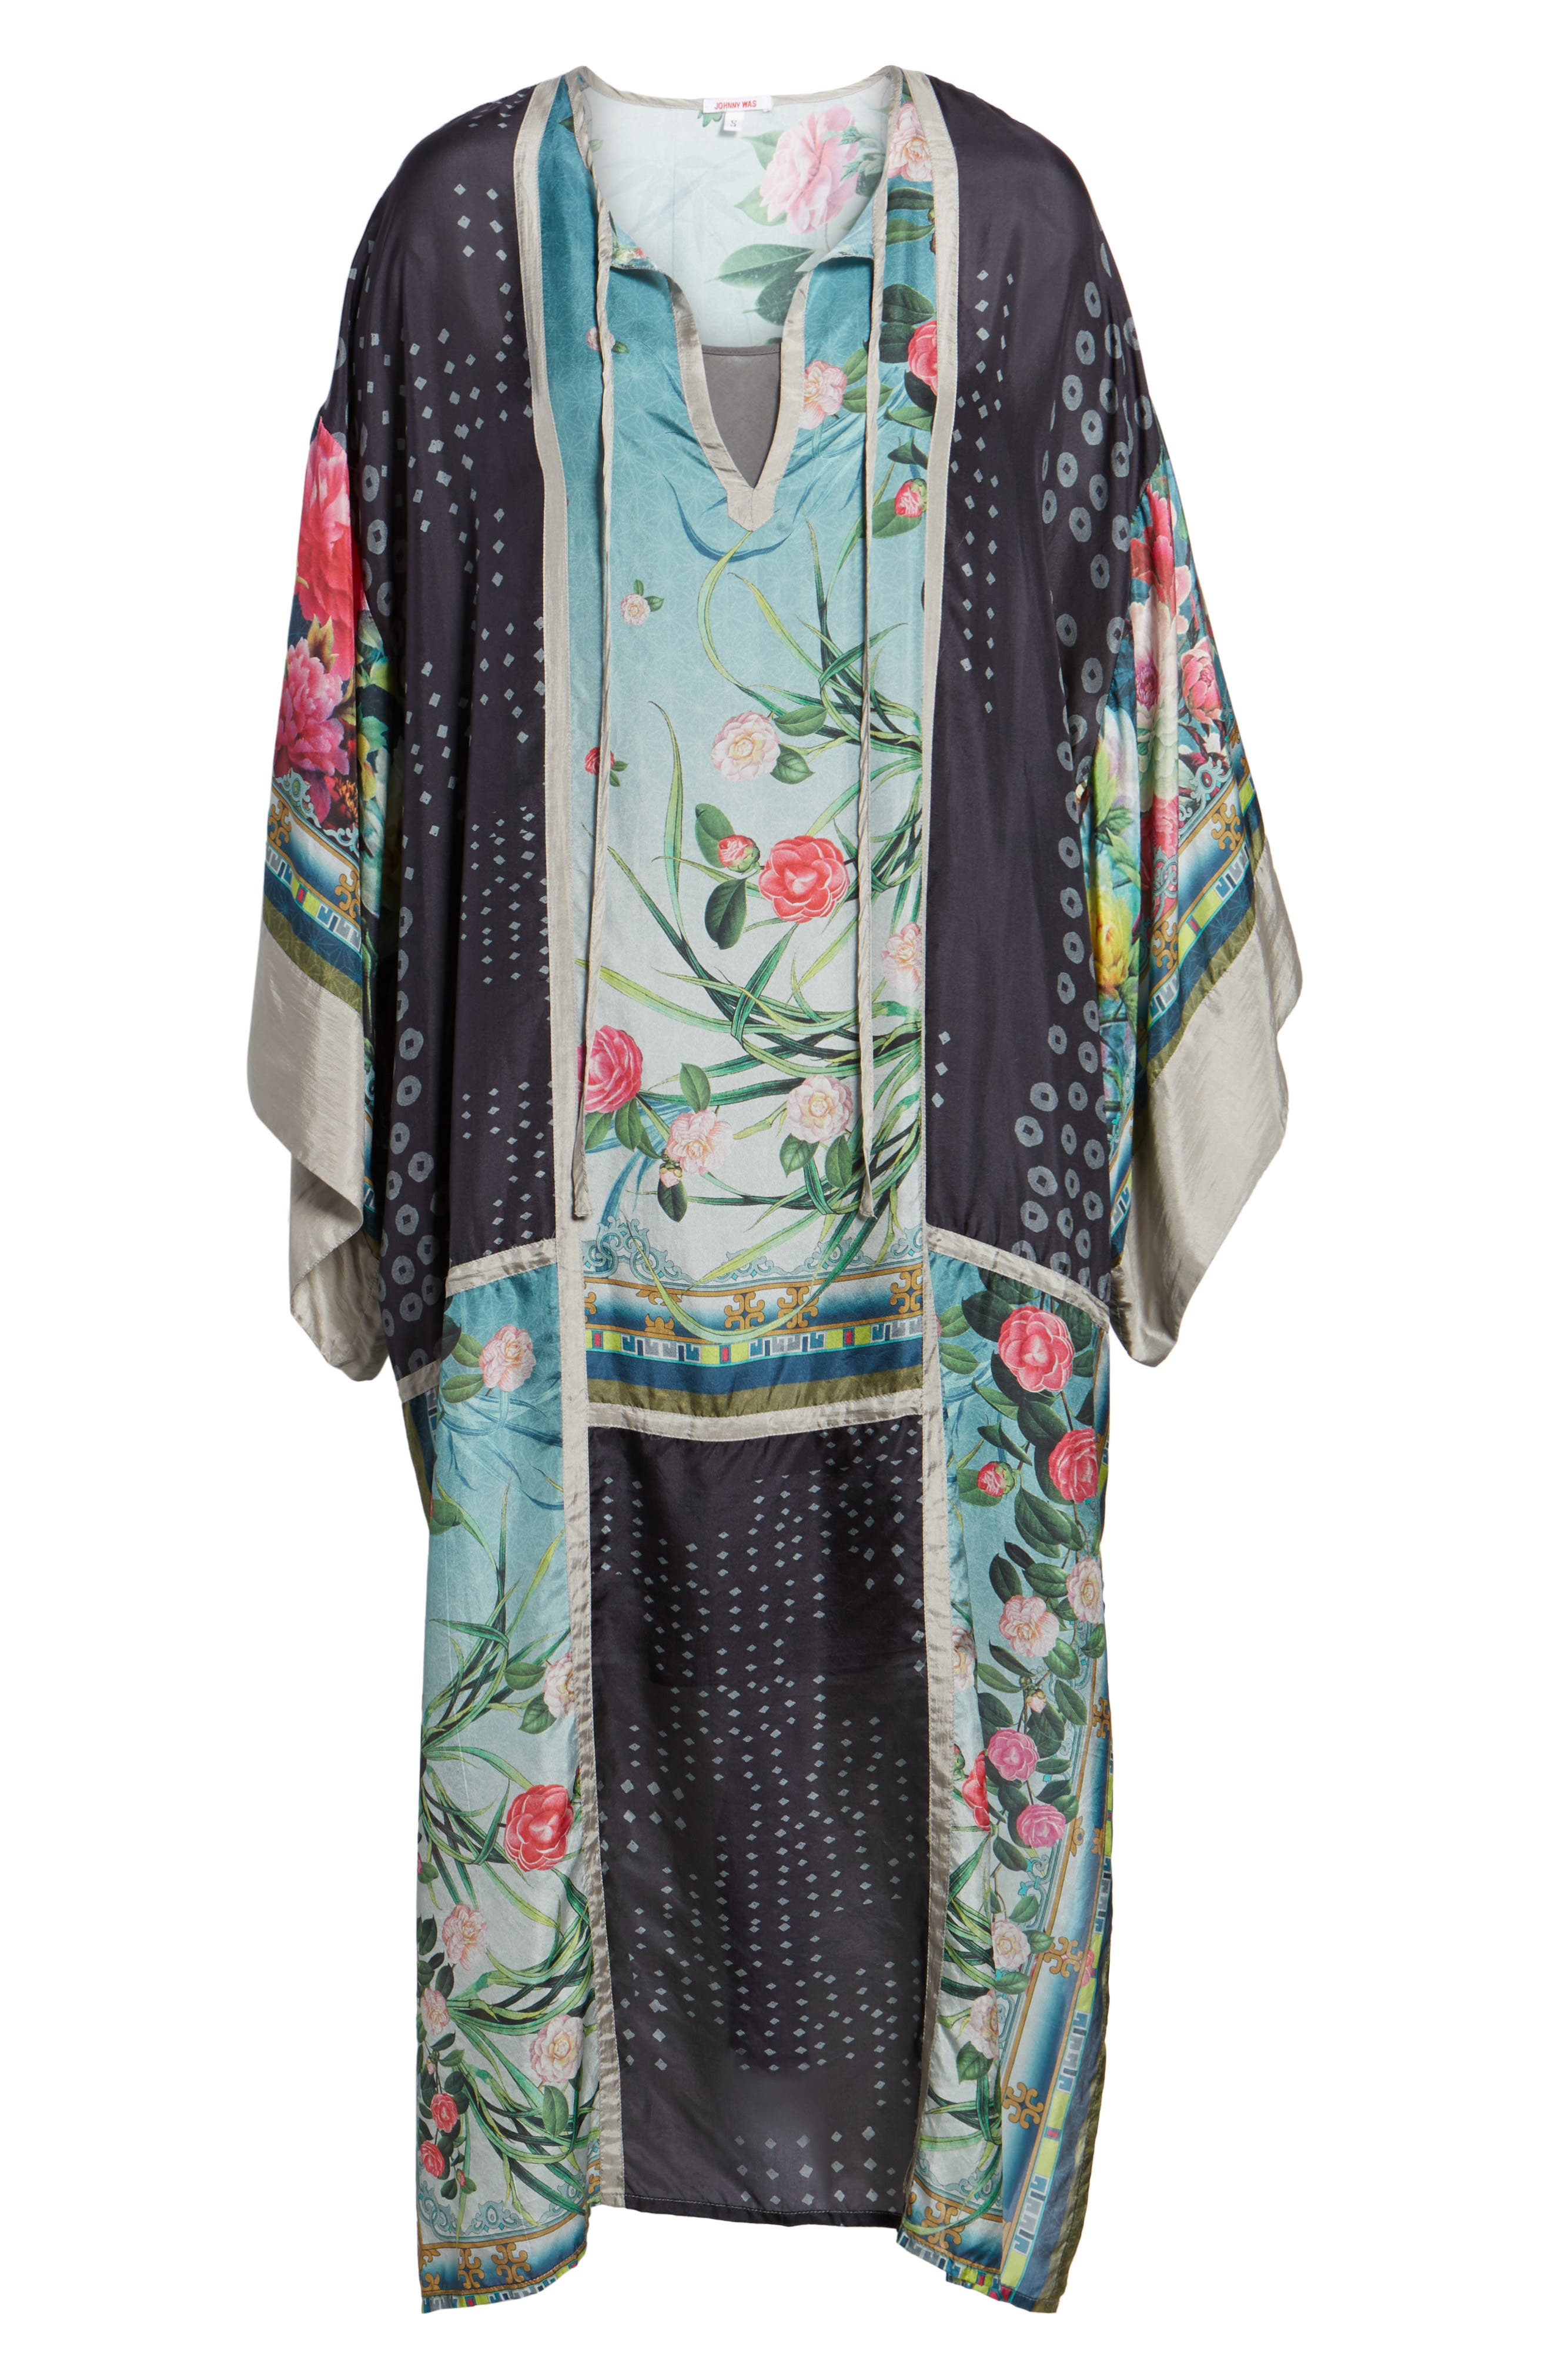 Camuba Heaven Silk Kimono Dress,                             Alternate thumbnail 6, color,                             010